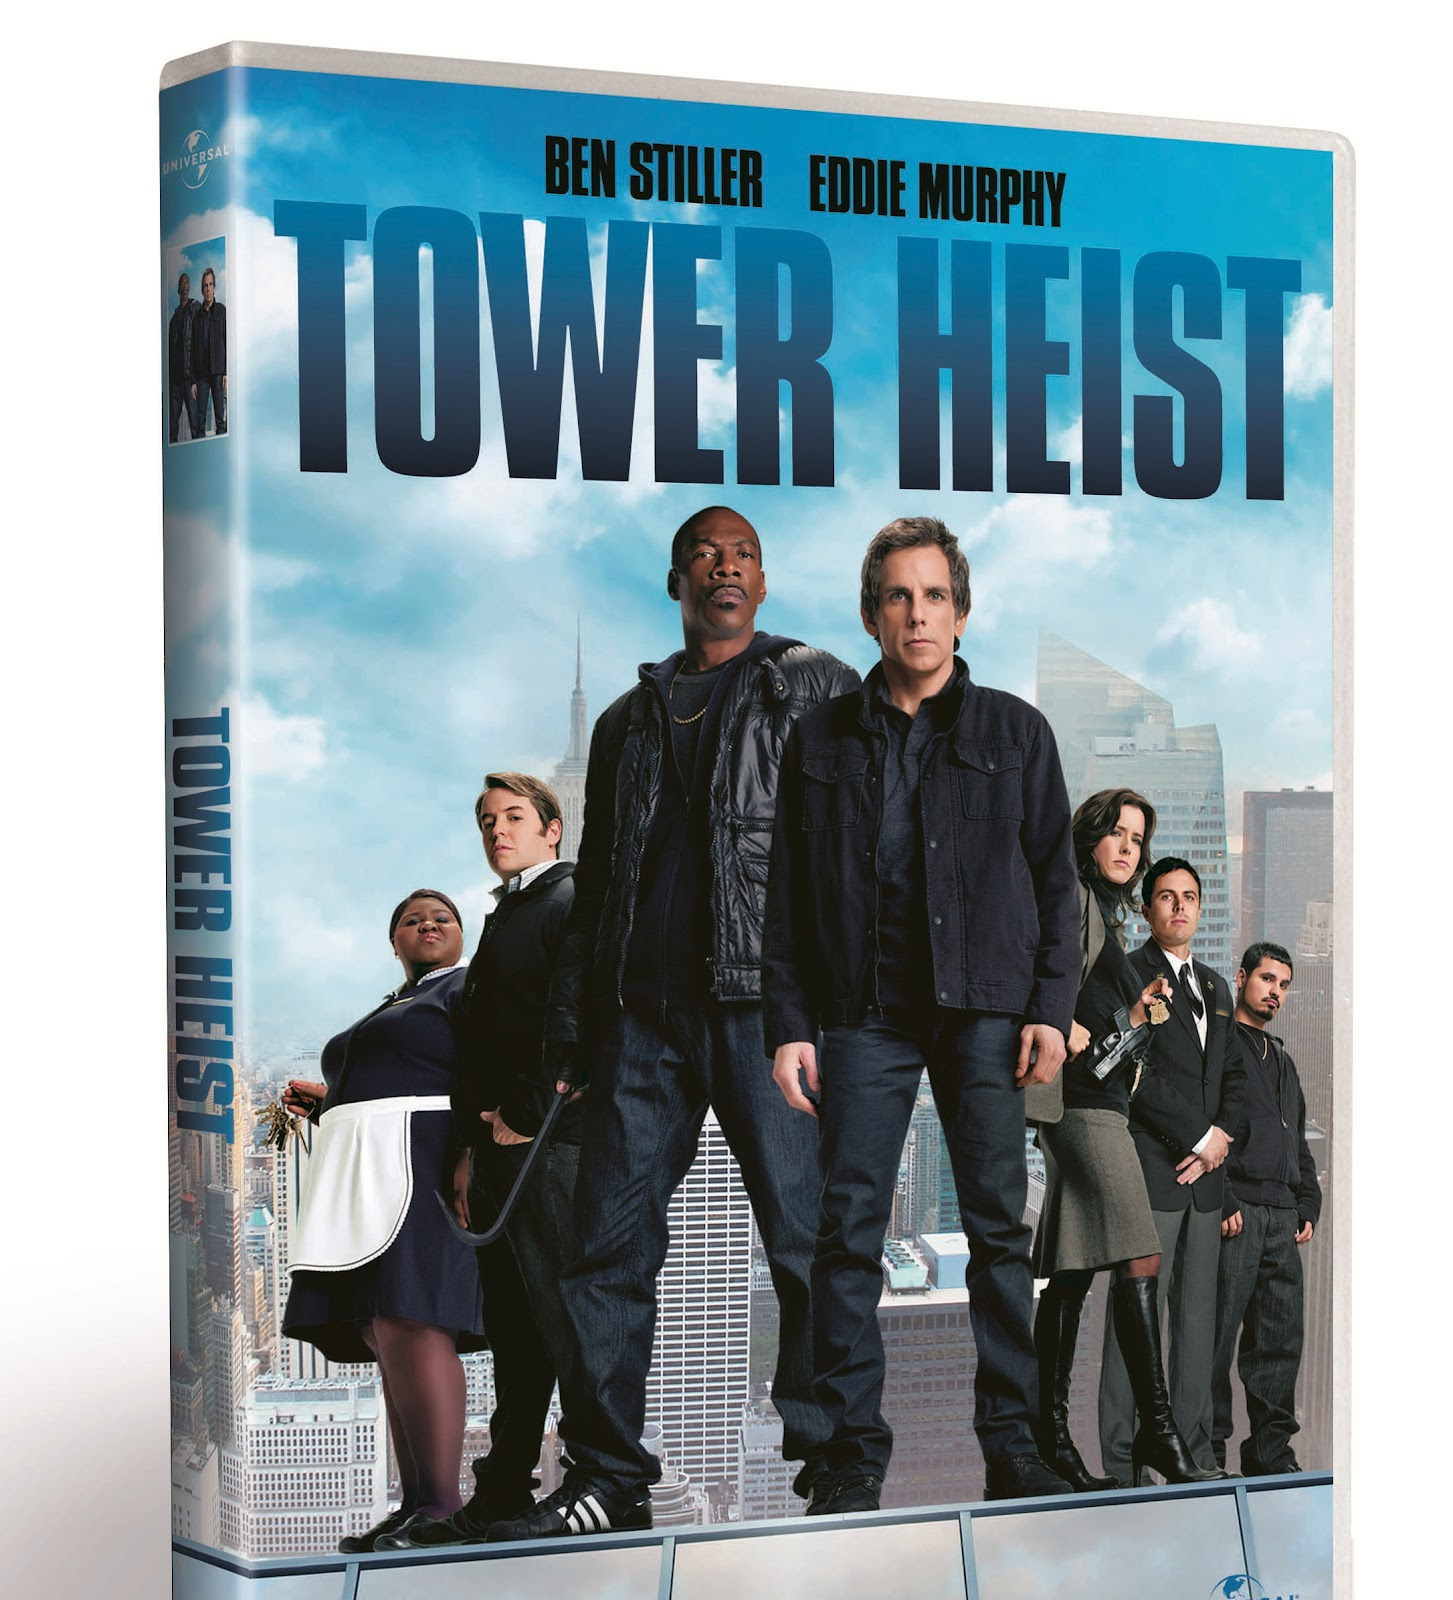 TOWER HEIST is CRIMINALLY FUNNY!!! - Out now on Blu-ray ...